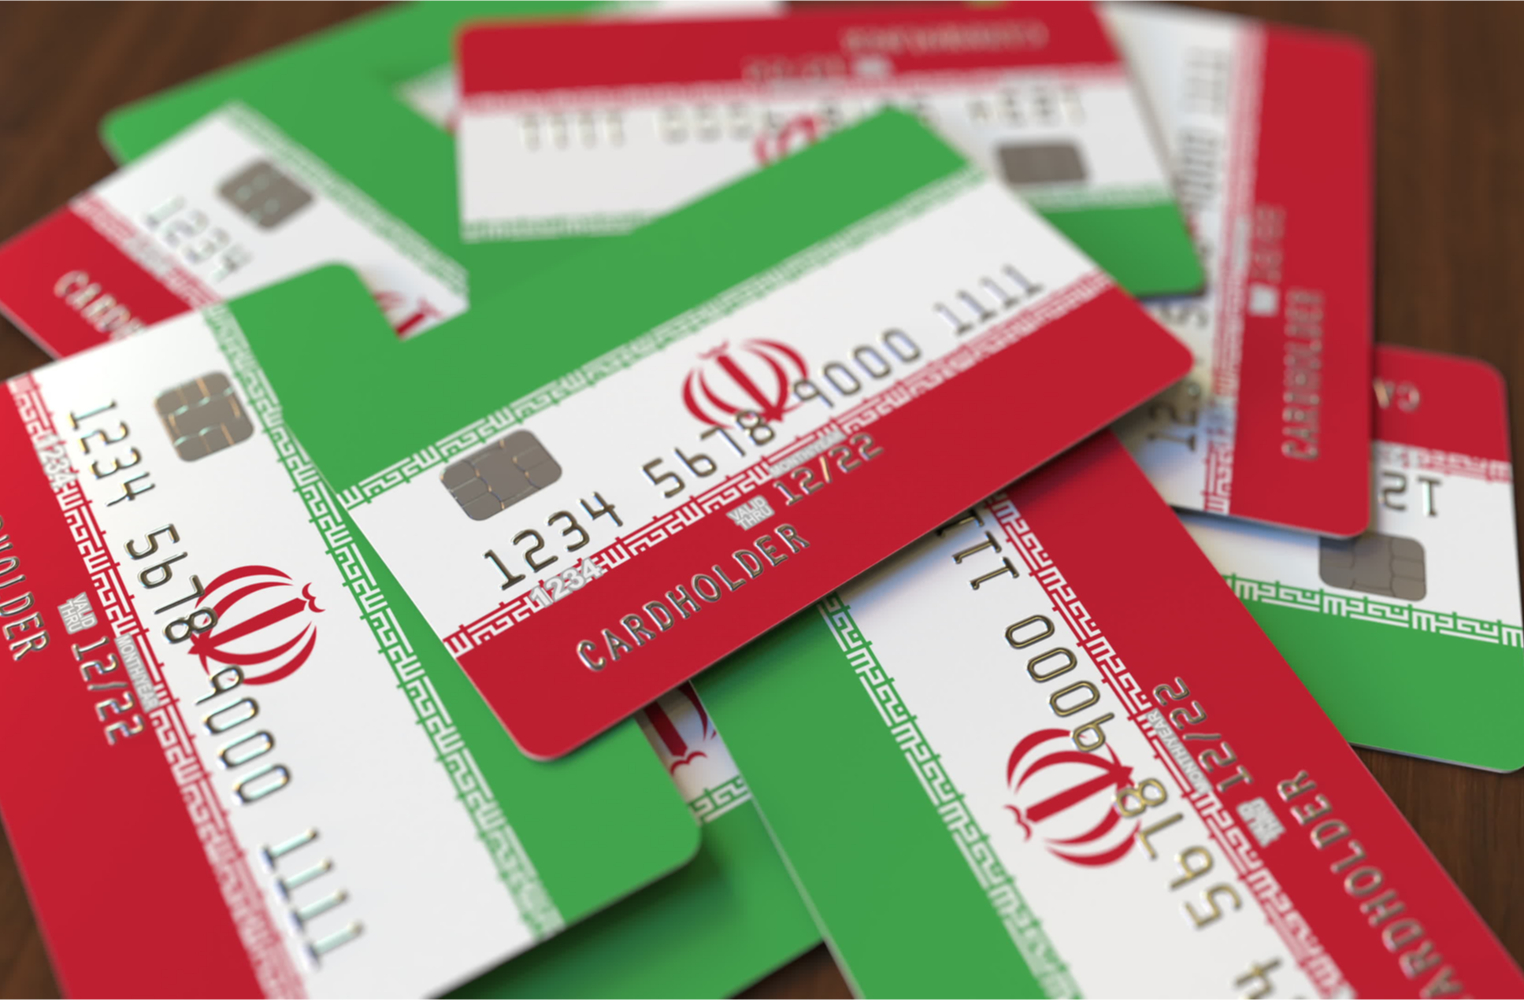 Iran Cards and Payments Report is now on Research and Markets' menu